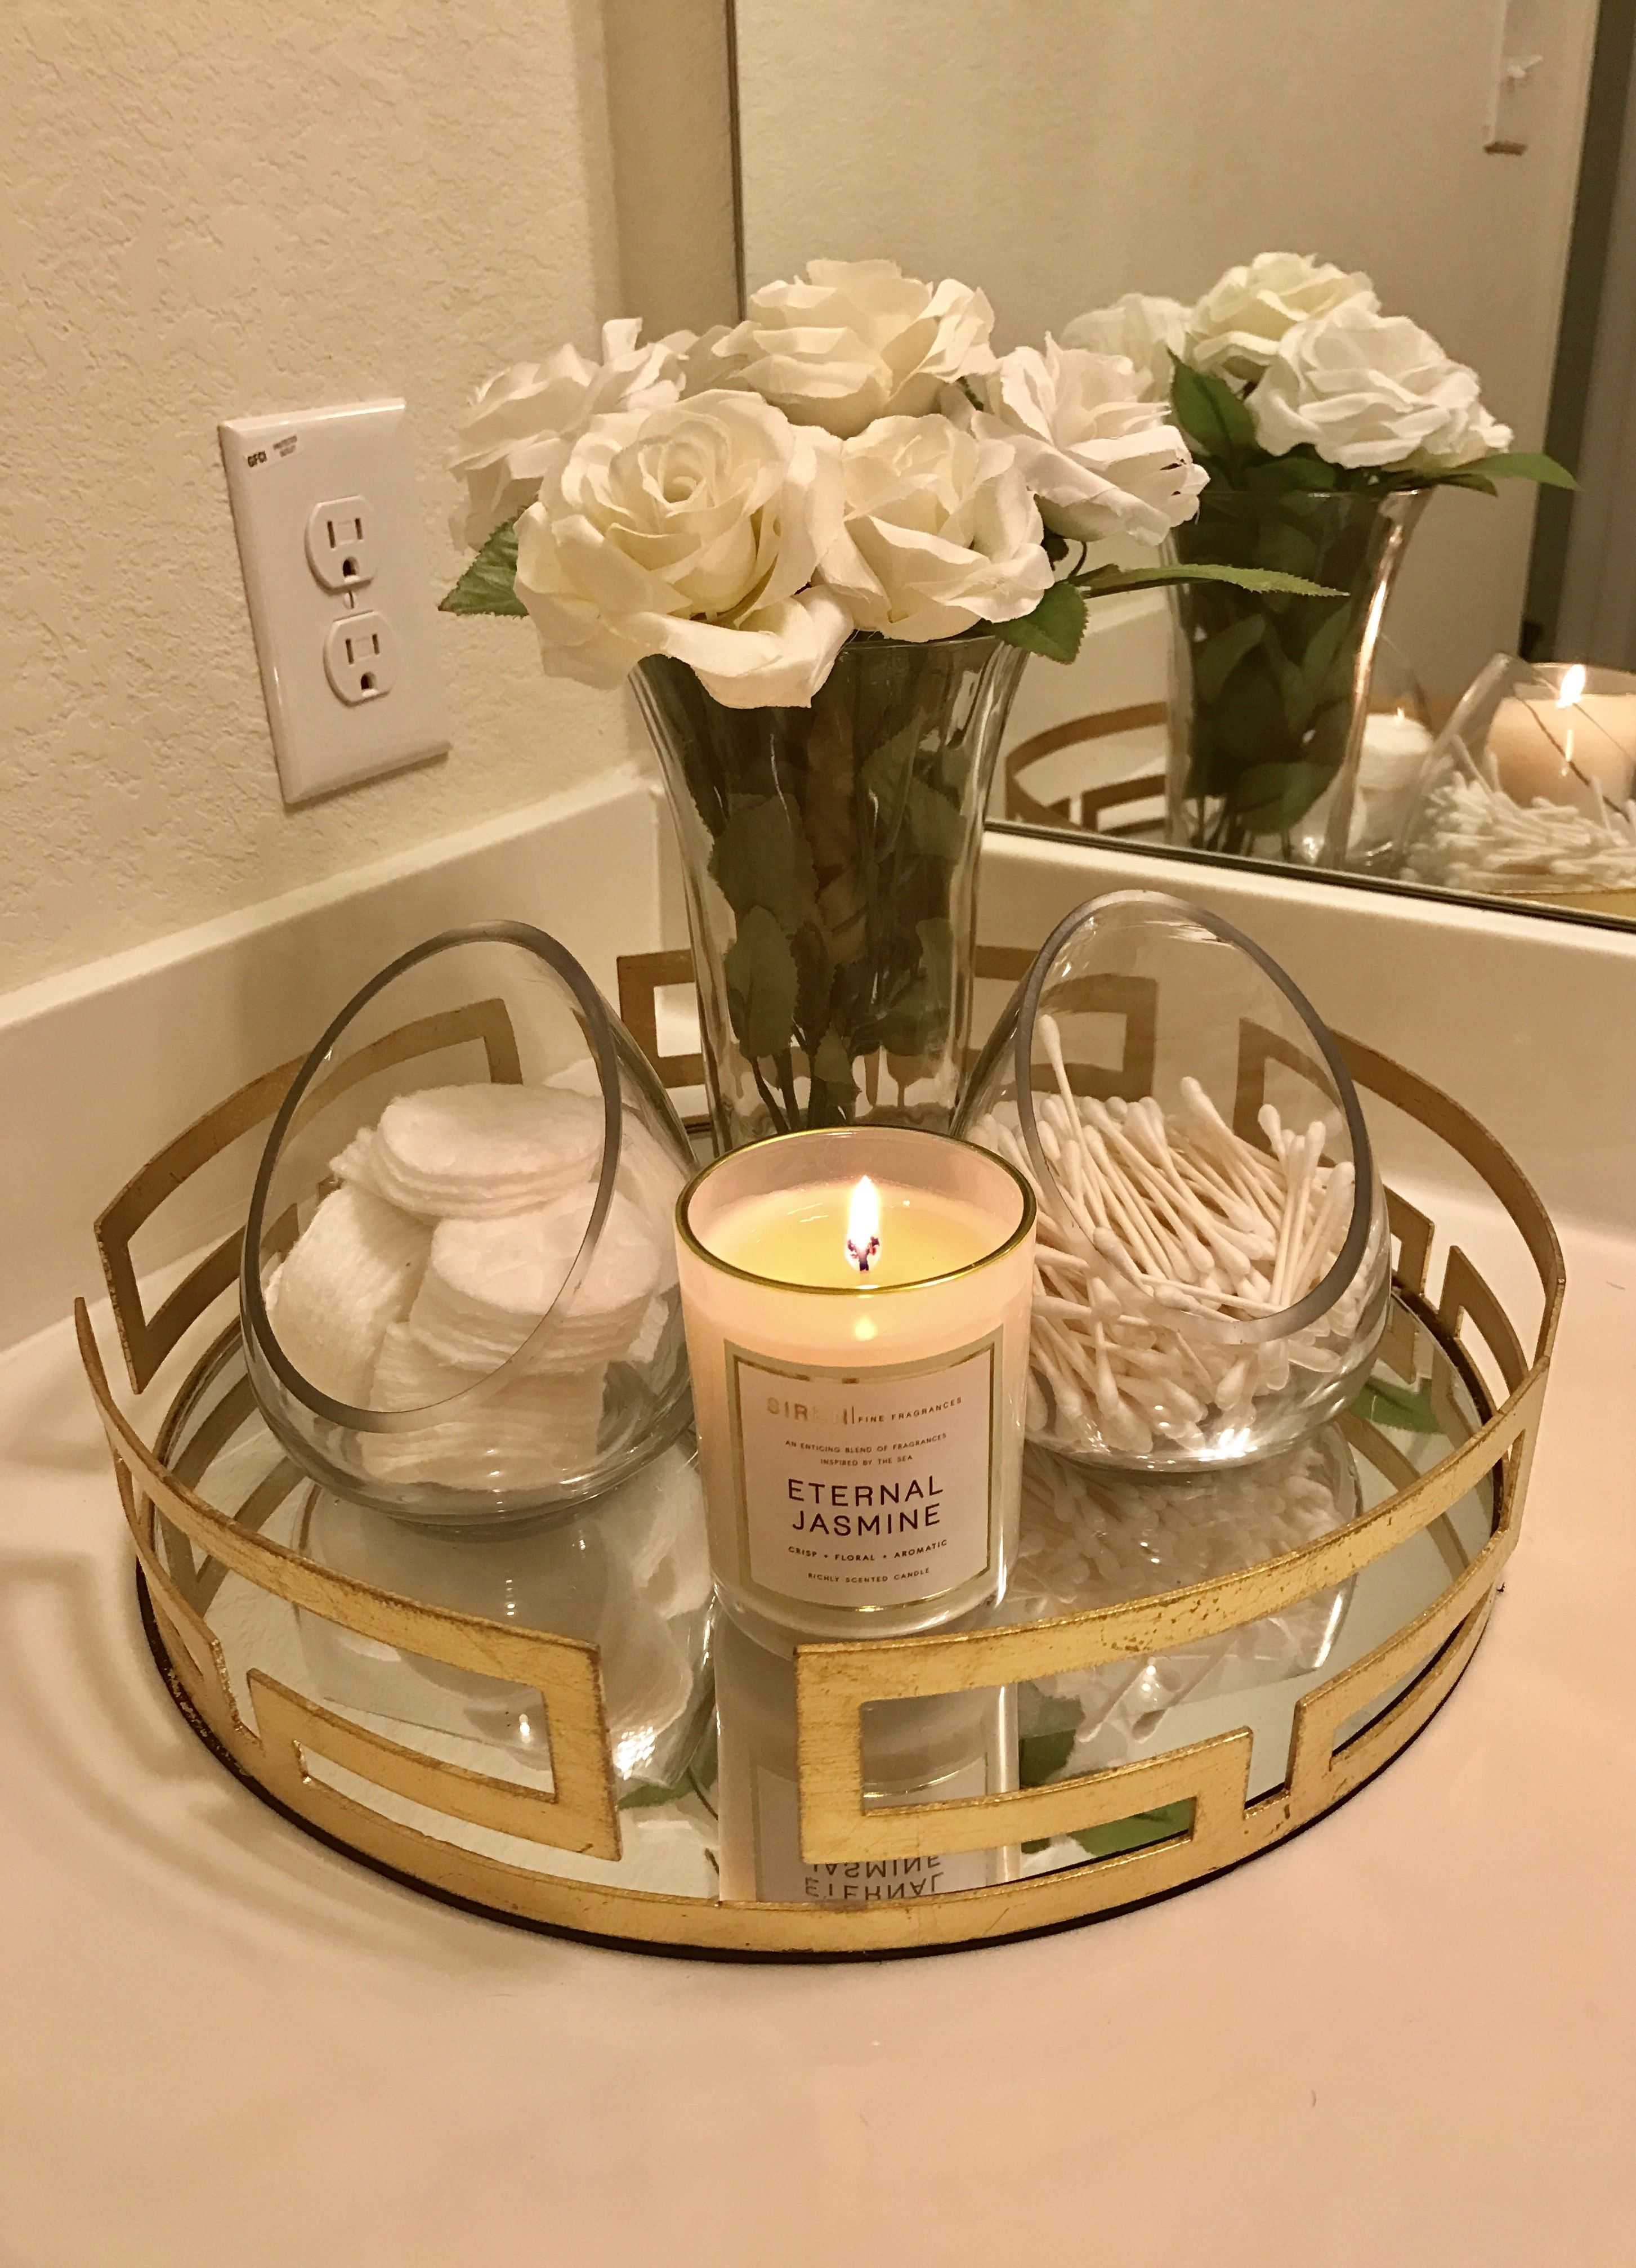 Im obssed with the bathroom piece i put together gold tray